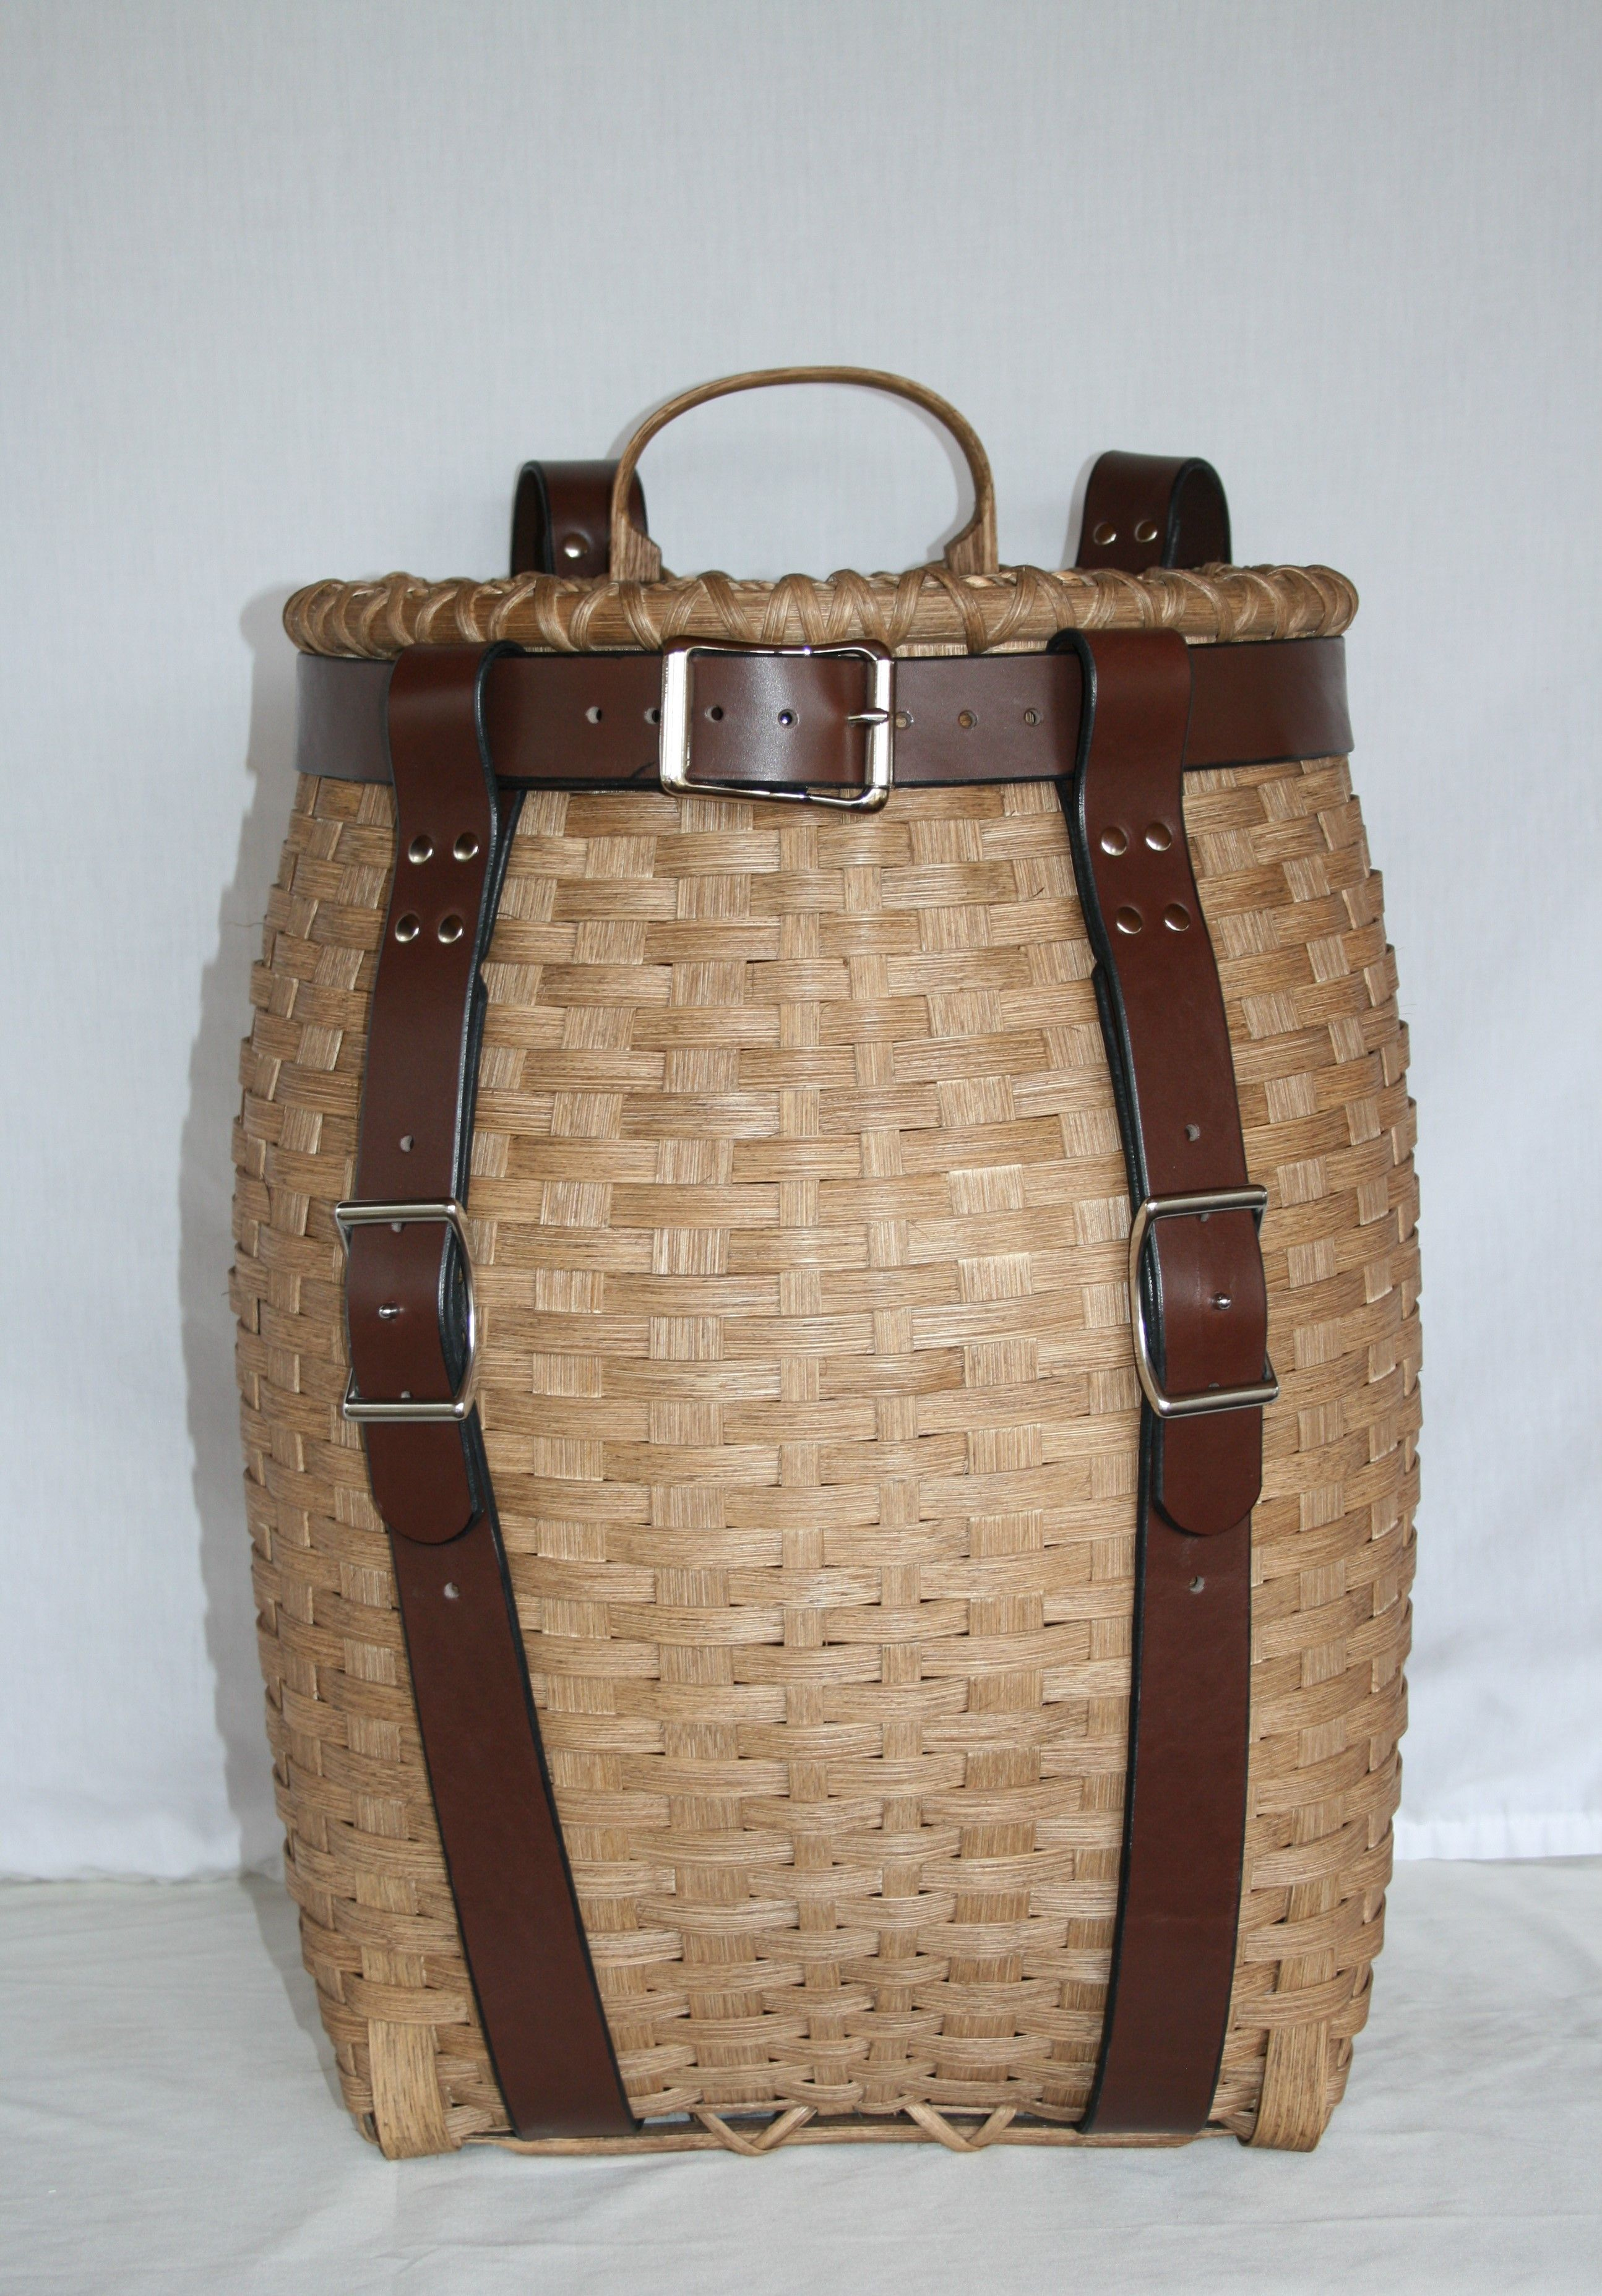 Mountaineer - Adirondack Pack Basket with Leather Harness | I Might